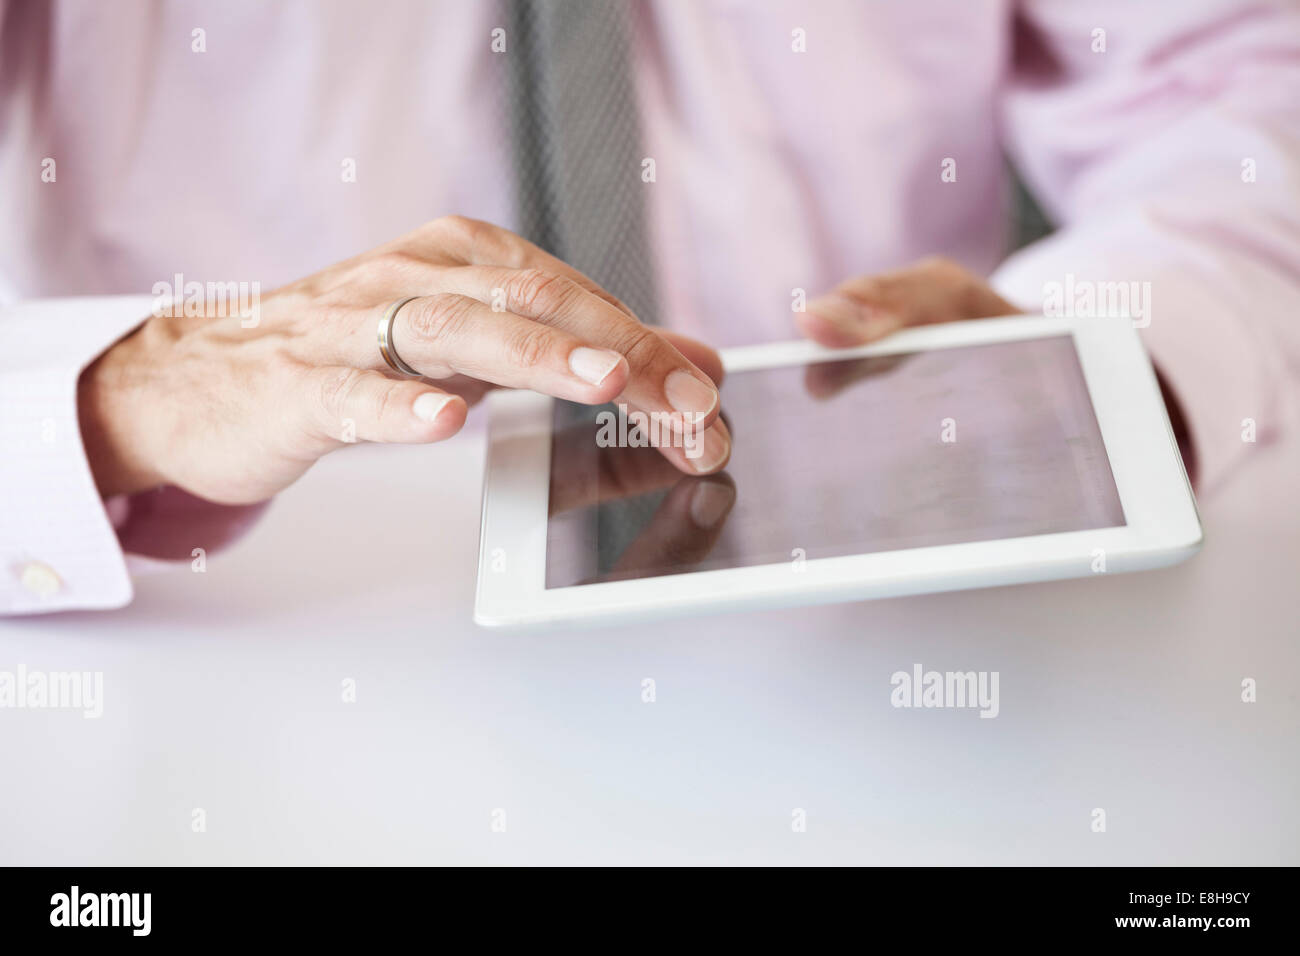 Man's hand on a tablet computer - Stock Image